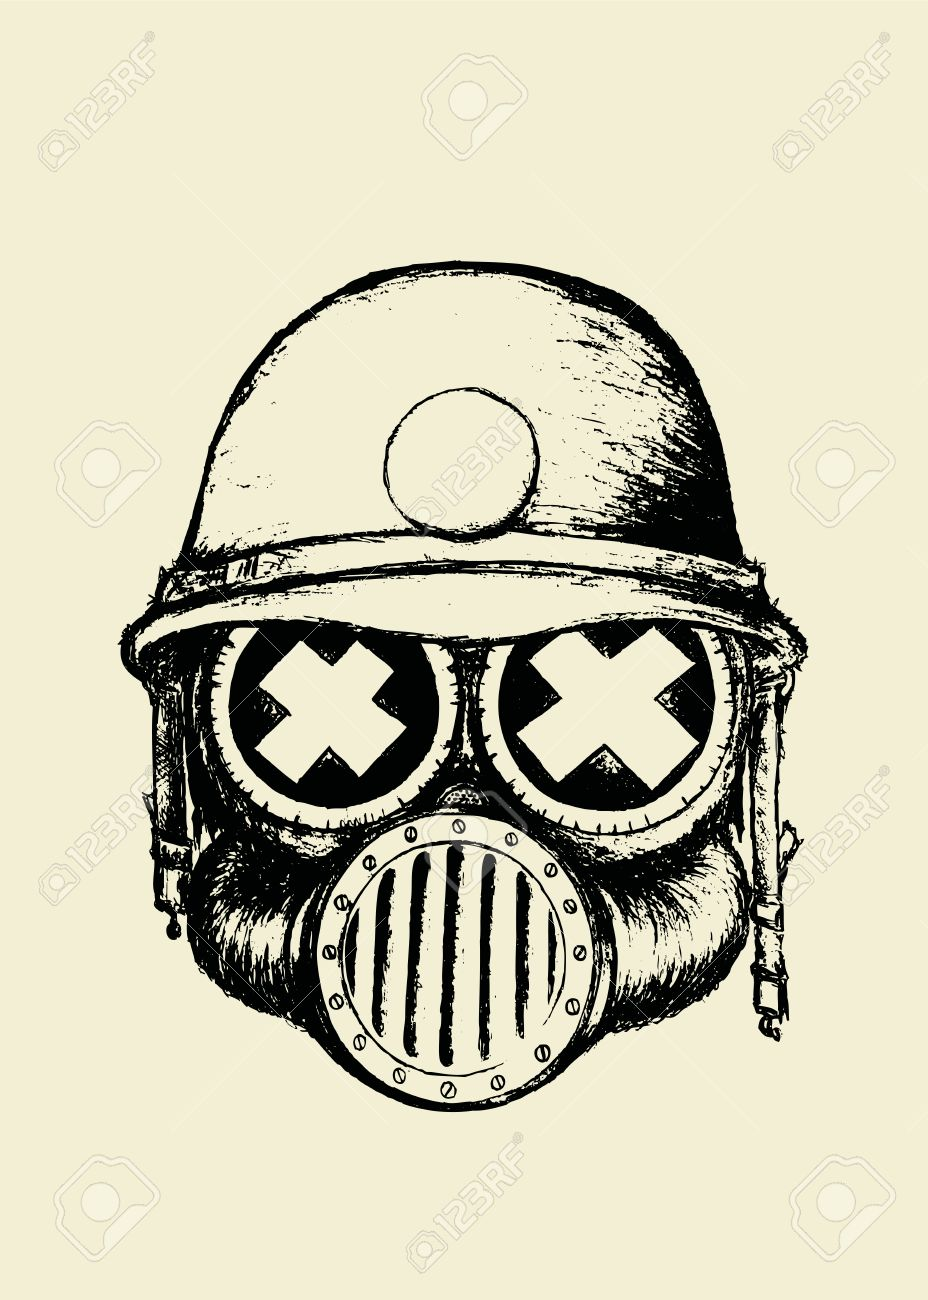 928x1300 War Skull.unusual Cartoon Style Skull With Gas Mask And Helmet